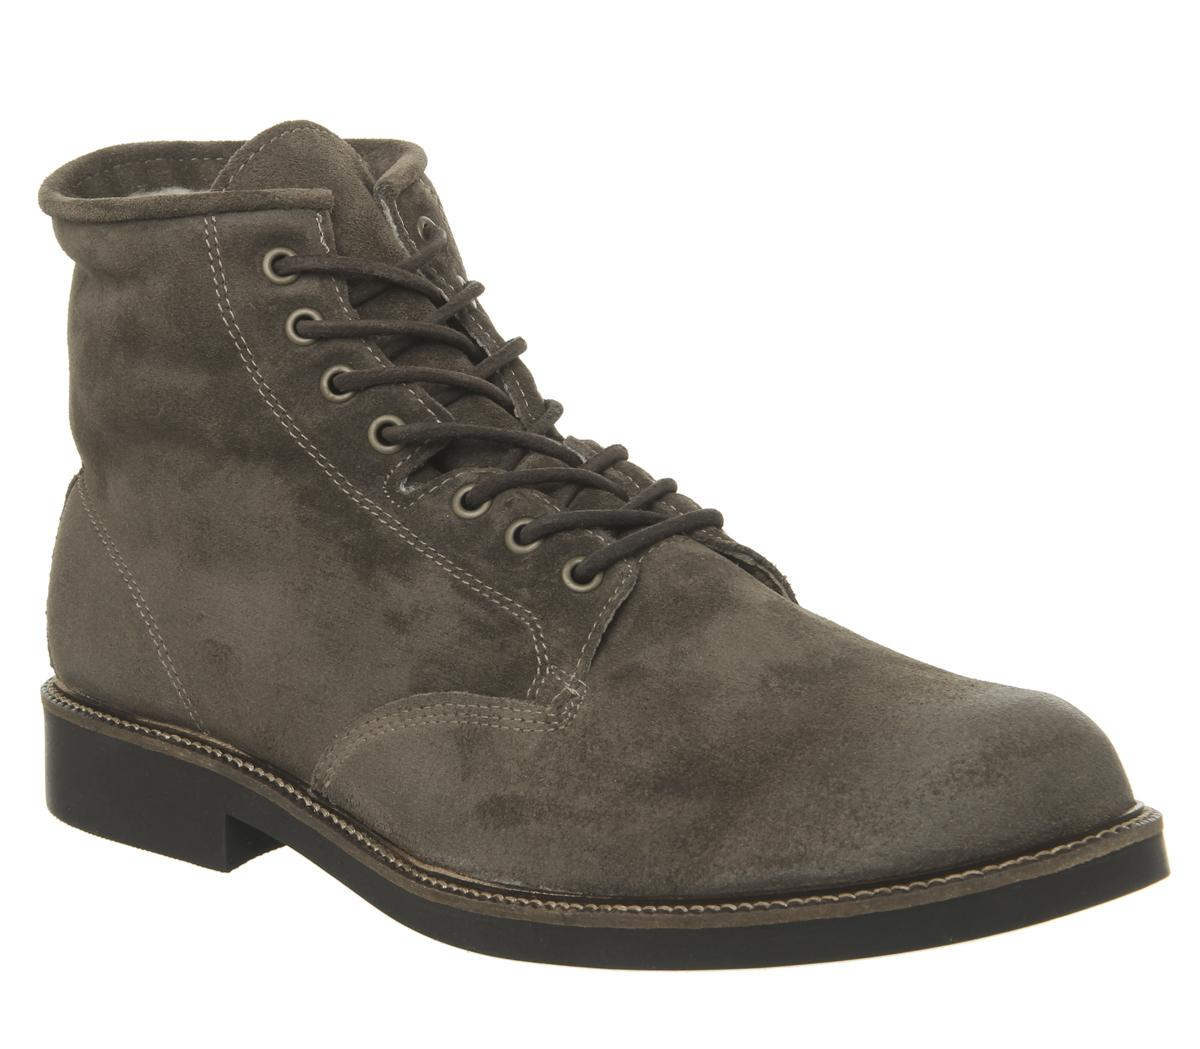 Indulge Lace Boots